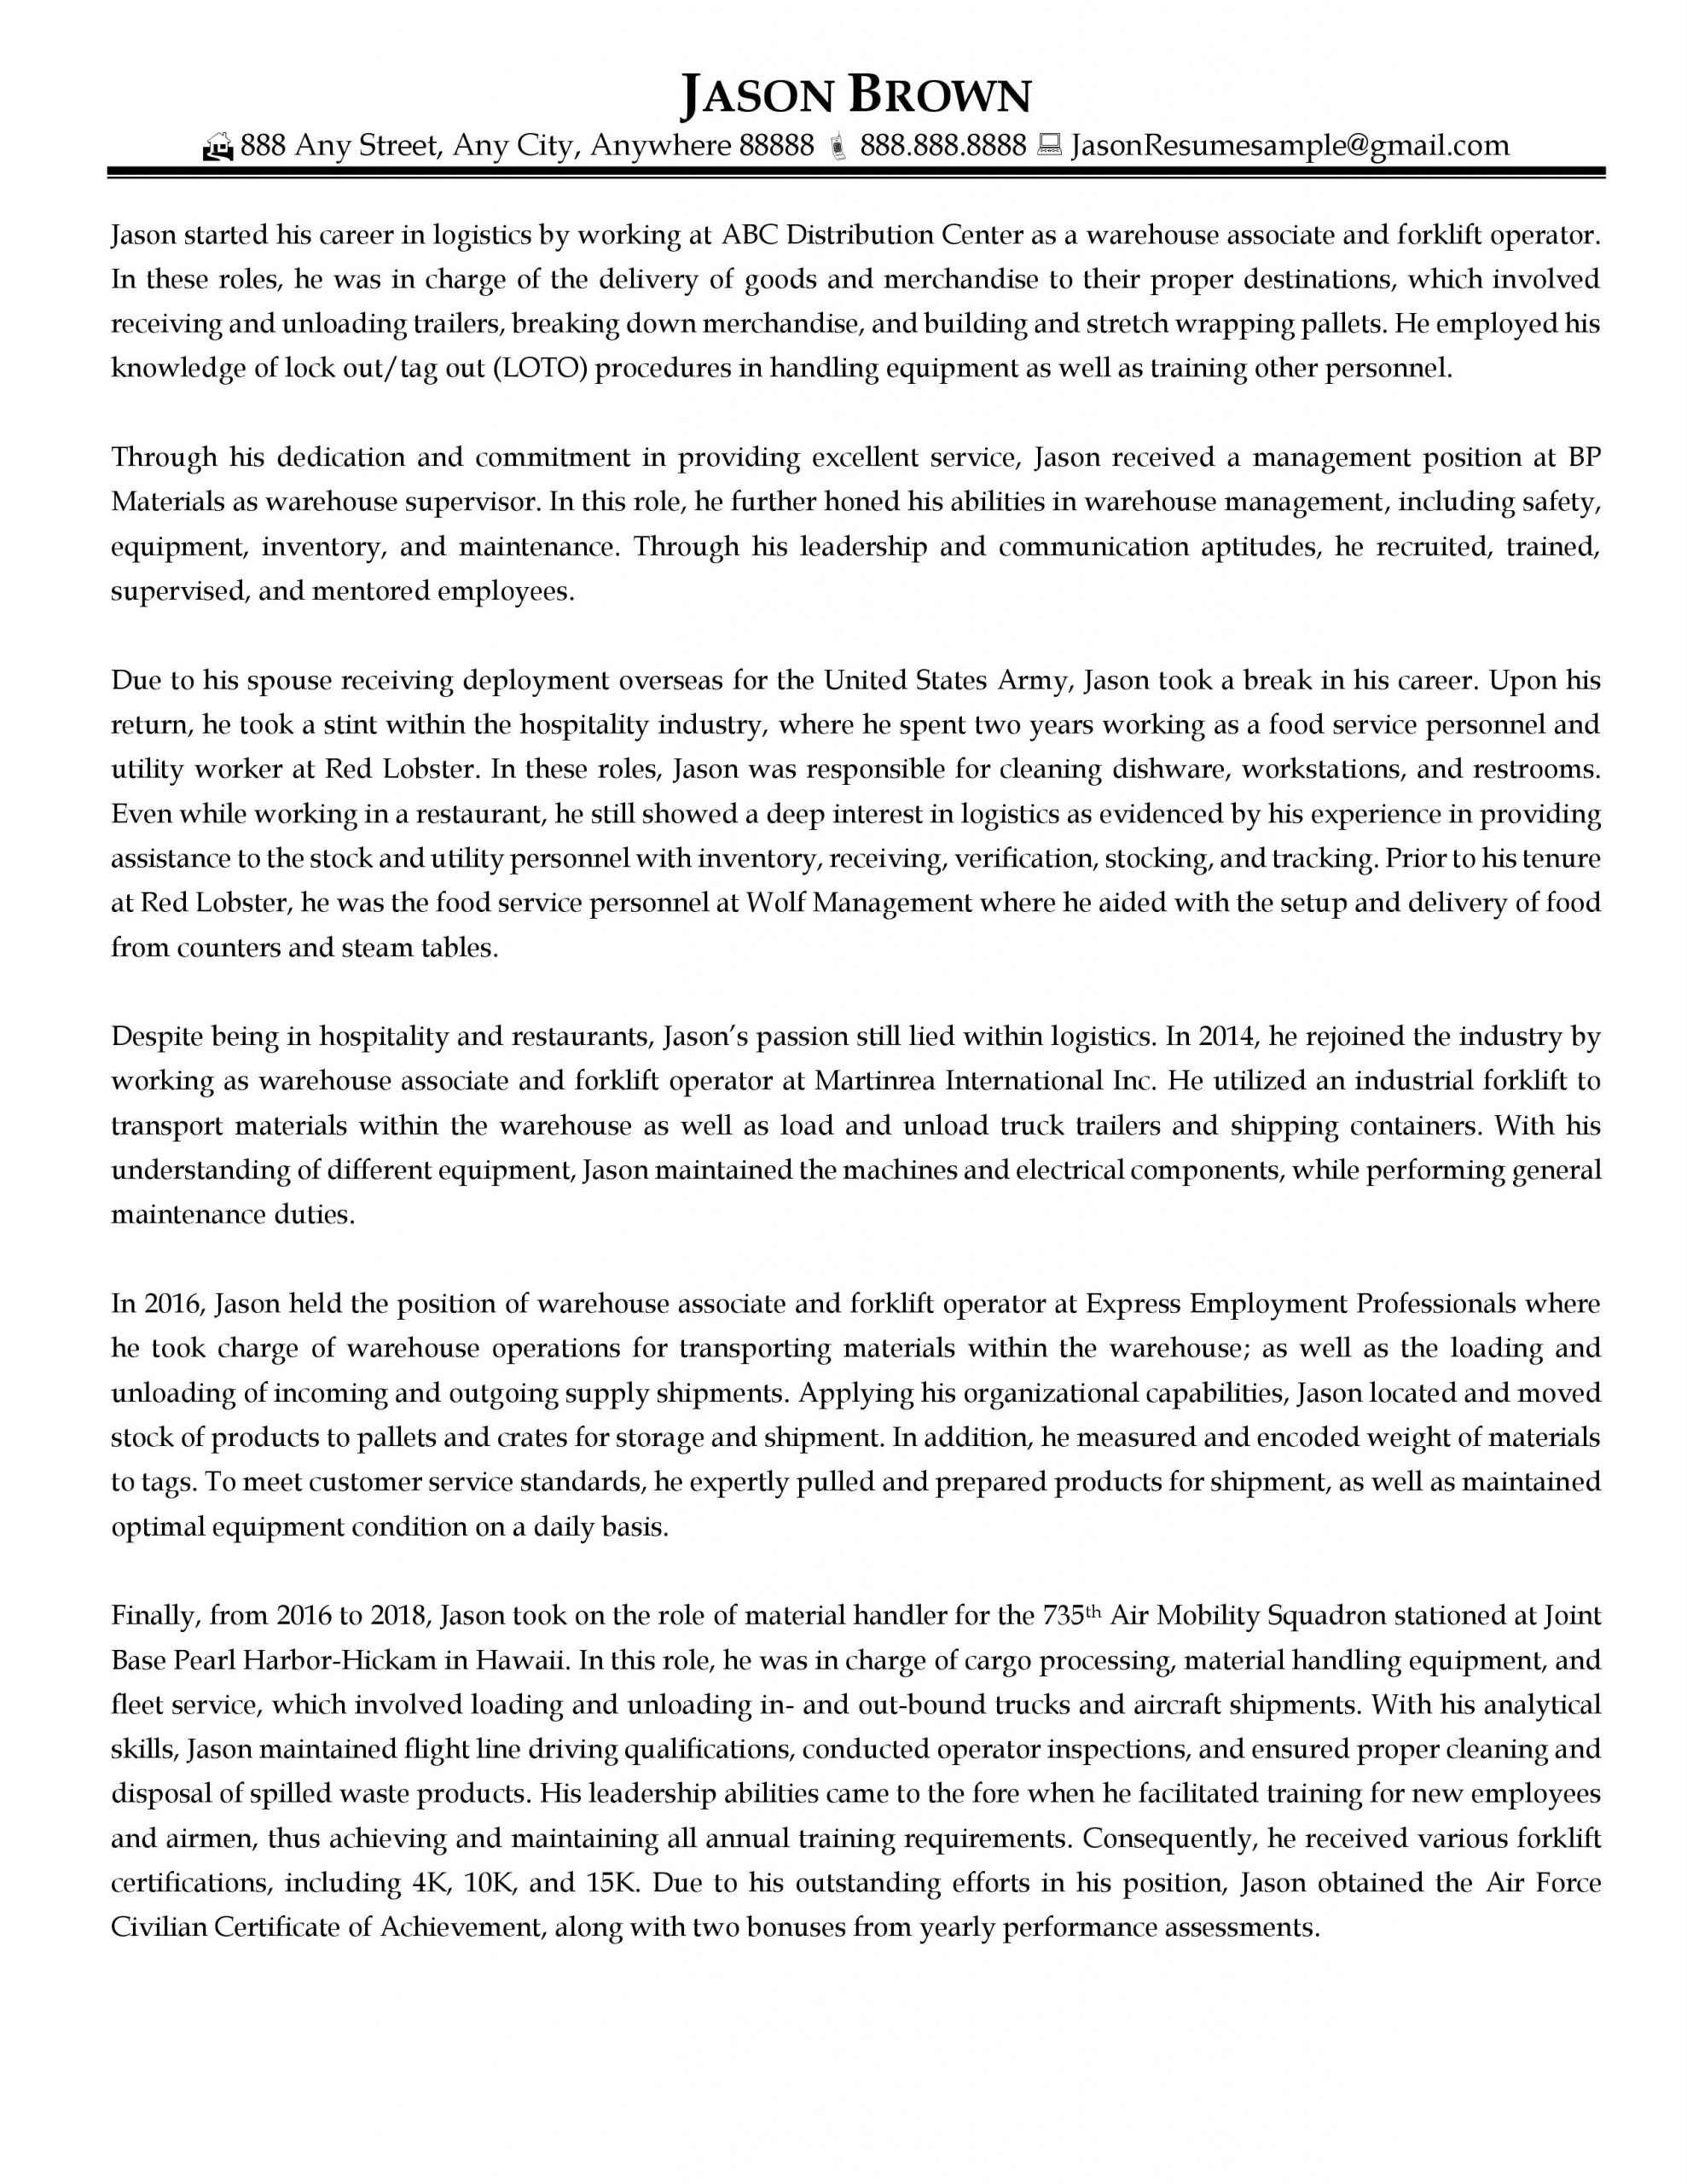 to write narrative resume for your advanced career storyline reviews new sample scaled Resume Storyline Resume Reviews